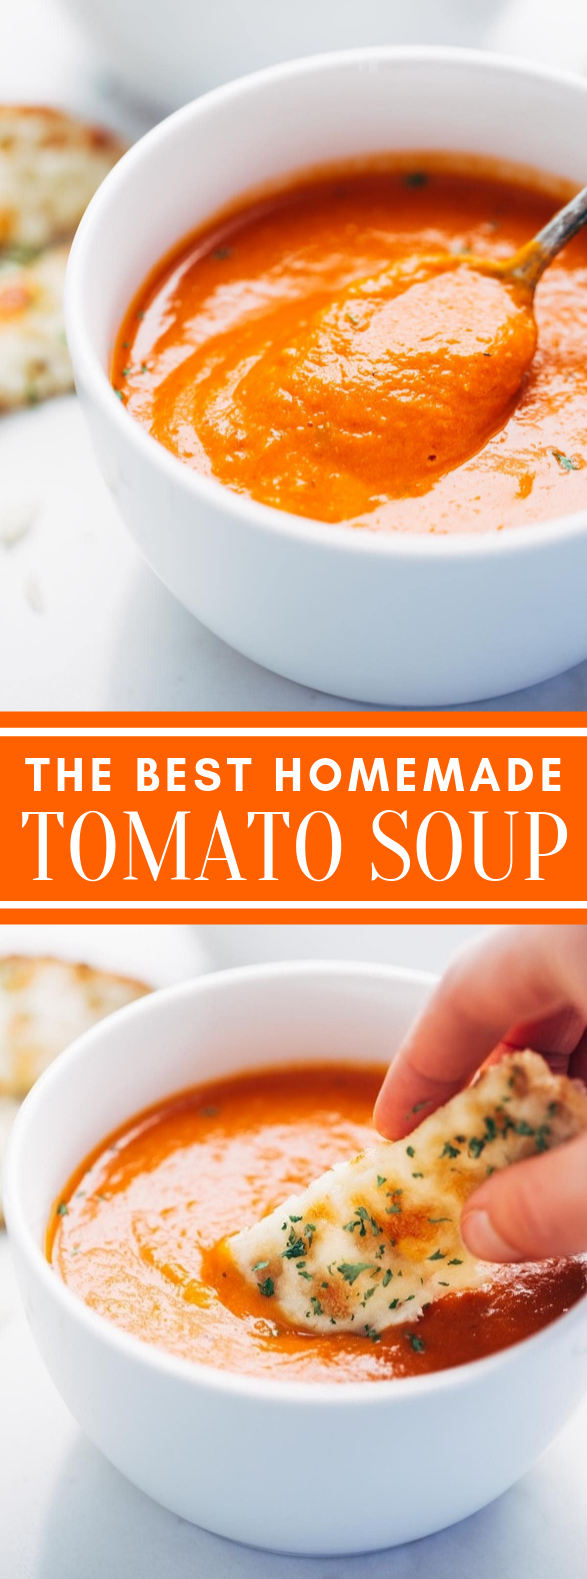 Simple Homemade Tomato Soup #dinner #lunch